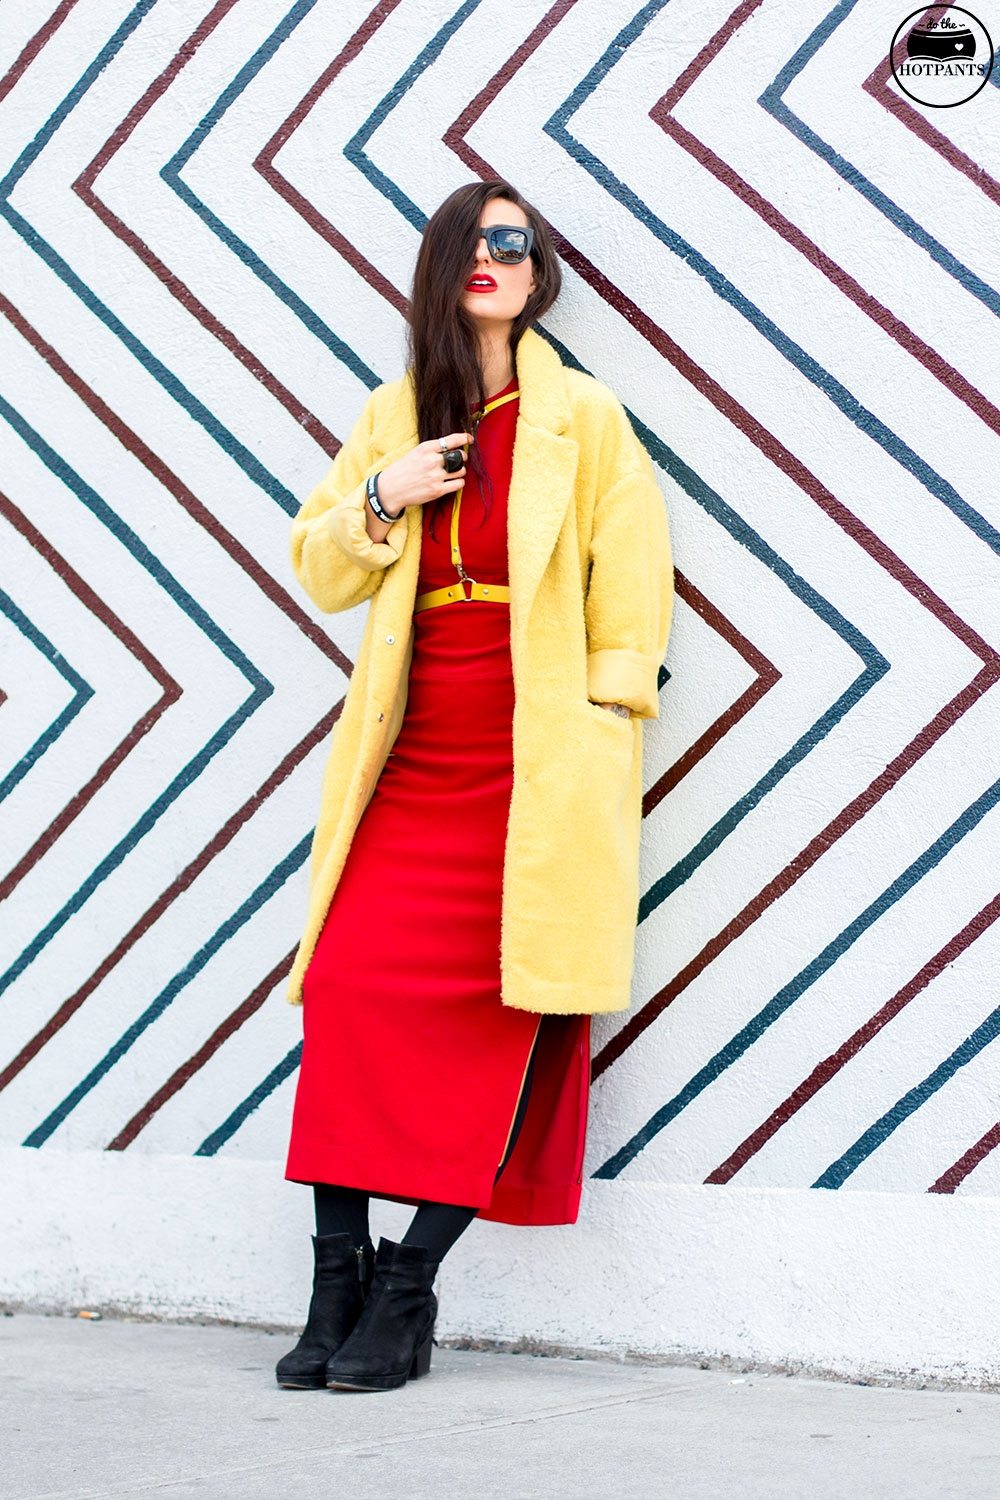 Do The Hotpants Dana Suchow Yellow Jaket Zana Bayne Harness Red Dress Bright Colored Outfit New York City Streetstyle IMG_7884